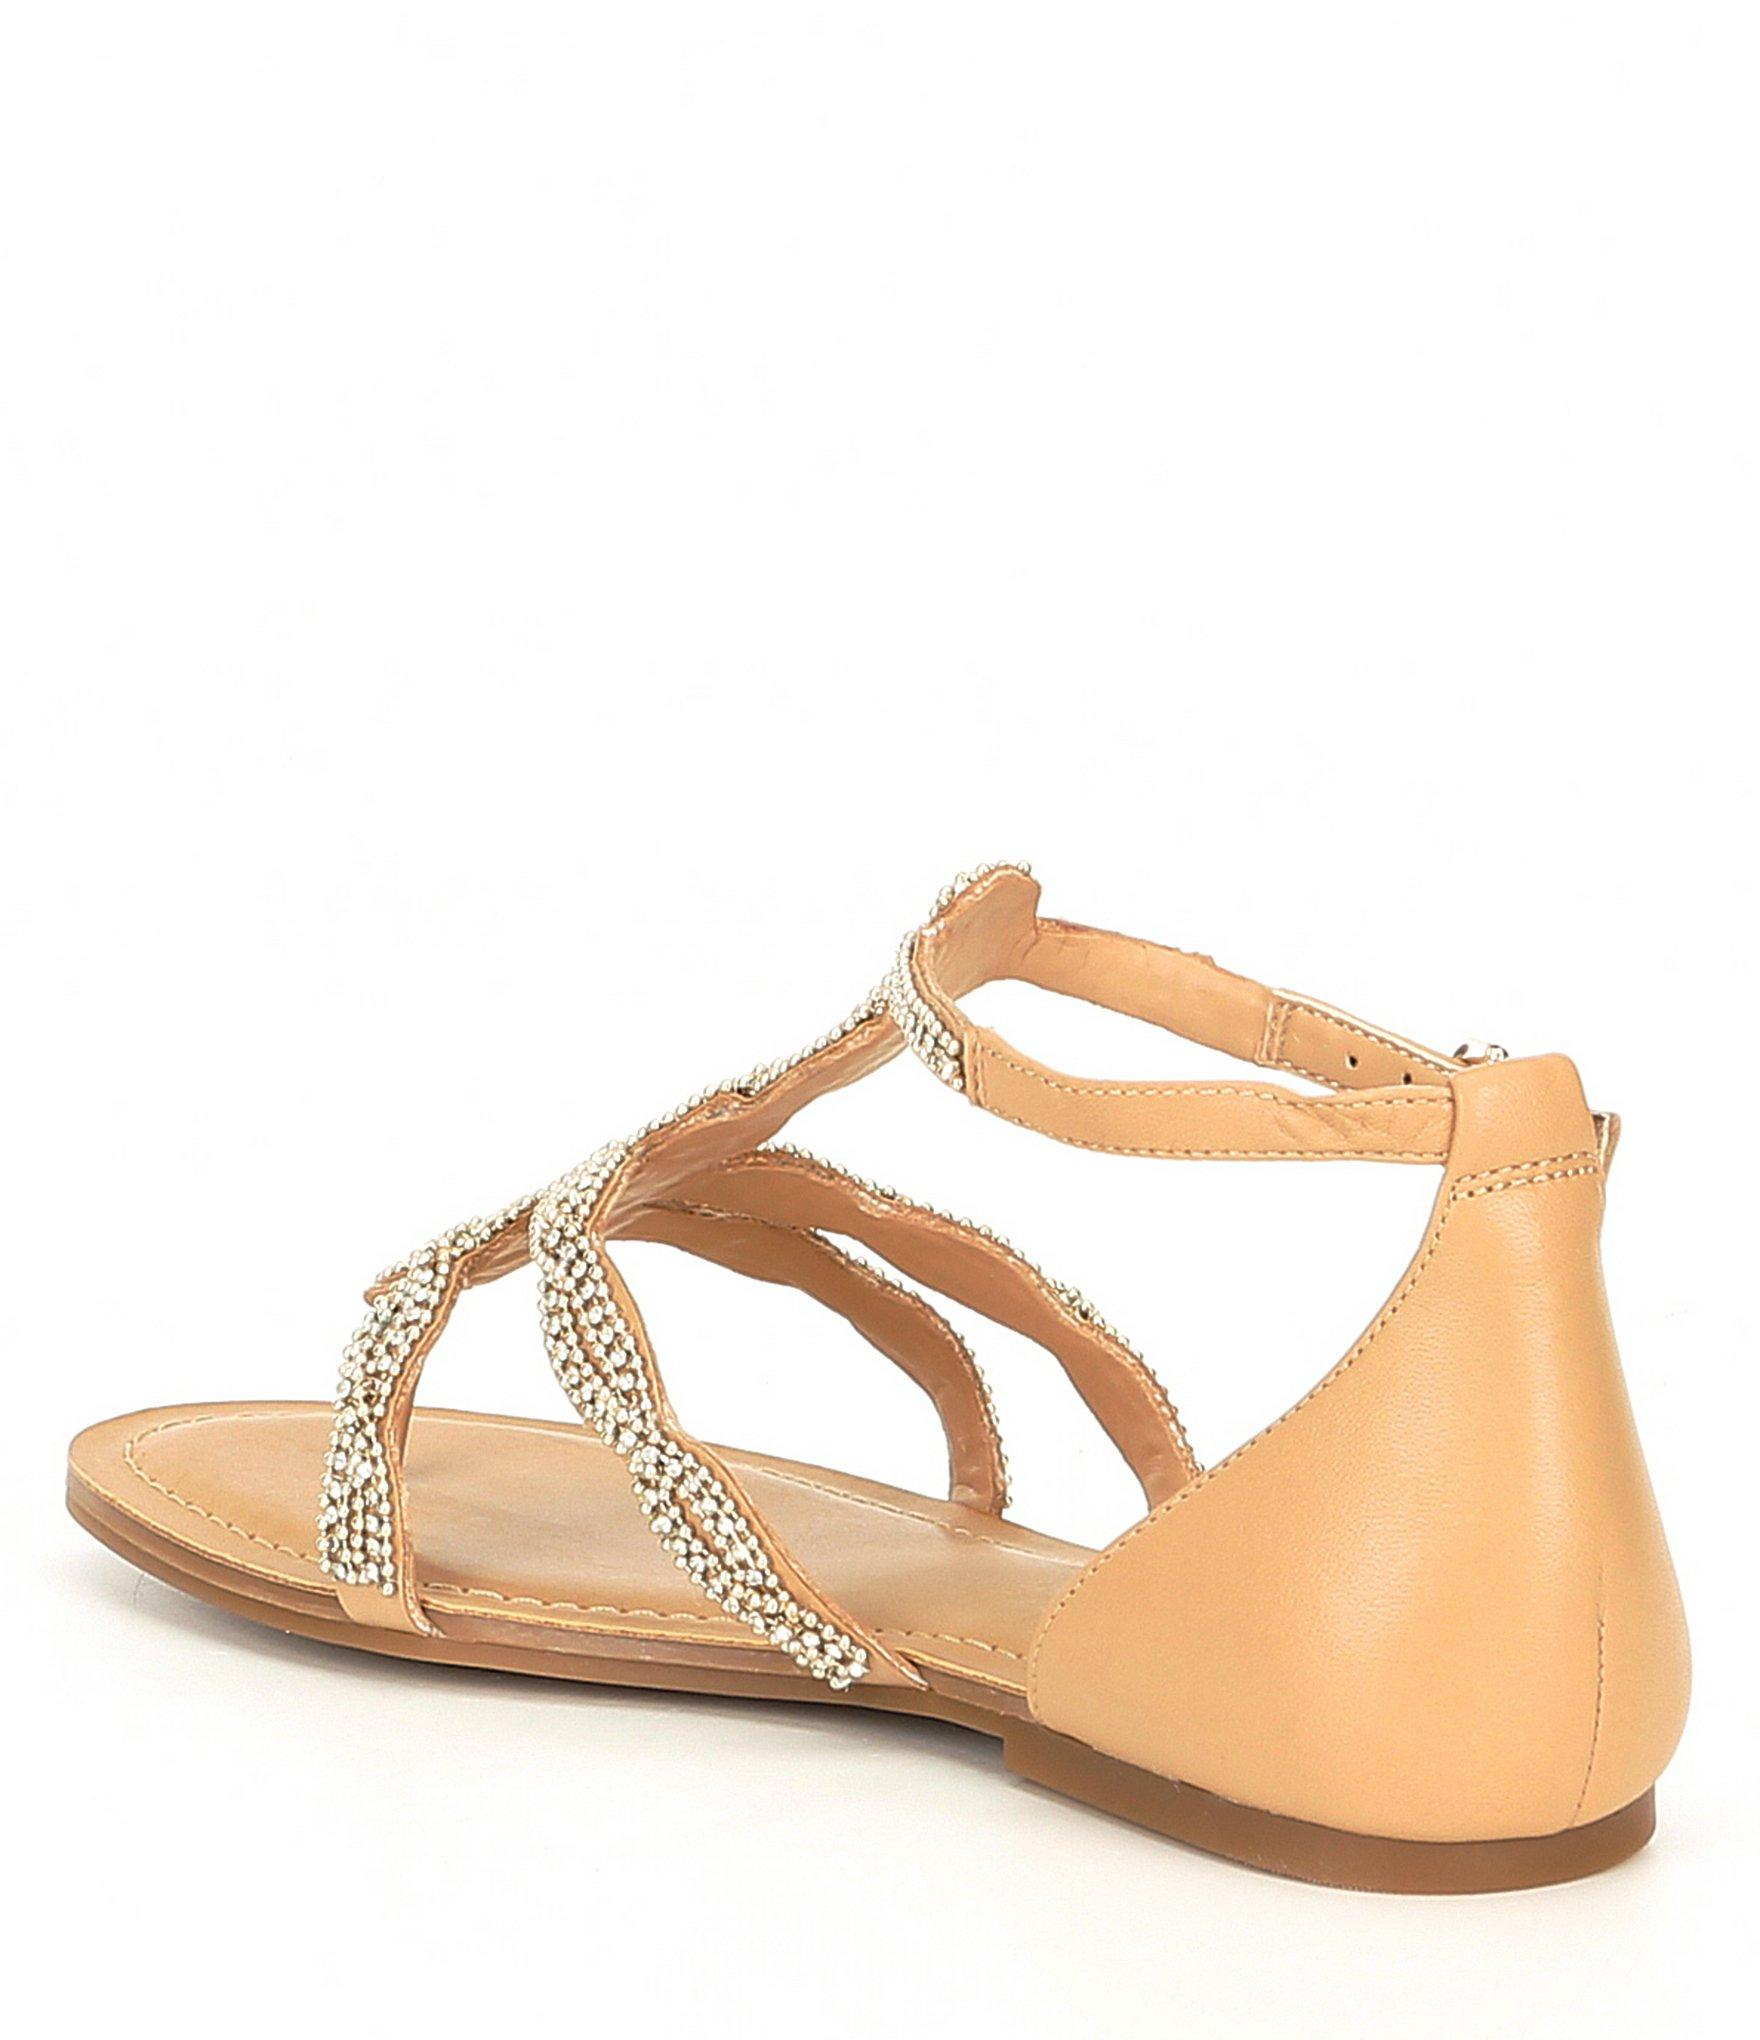 3866360ad4c7 Lyst - Gianni Bini Xandraa Chain Jewel Flat Sandals